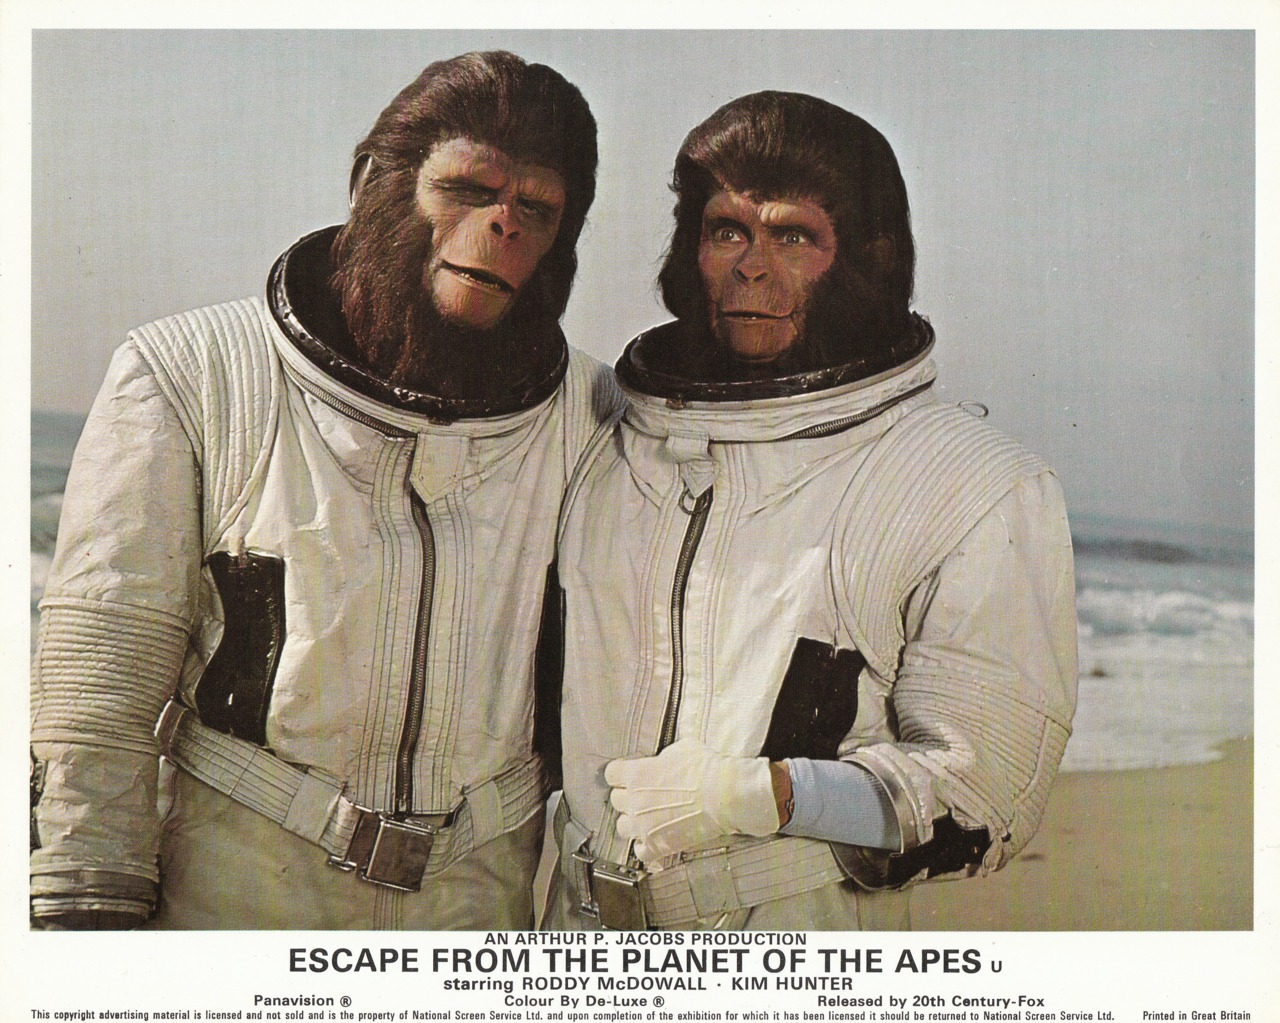 Cornelius and Zira from Escape From The Planet Of The Apes wearing Duros space suit prop